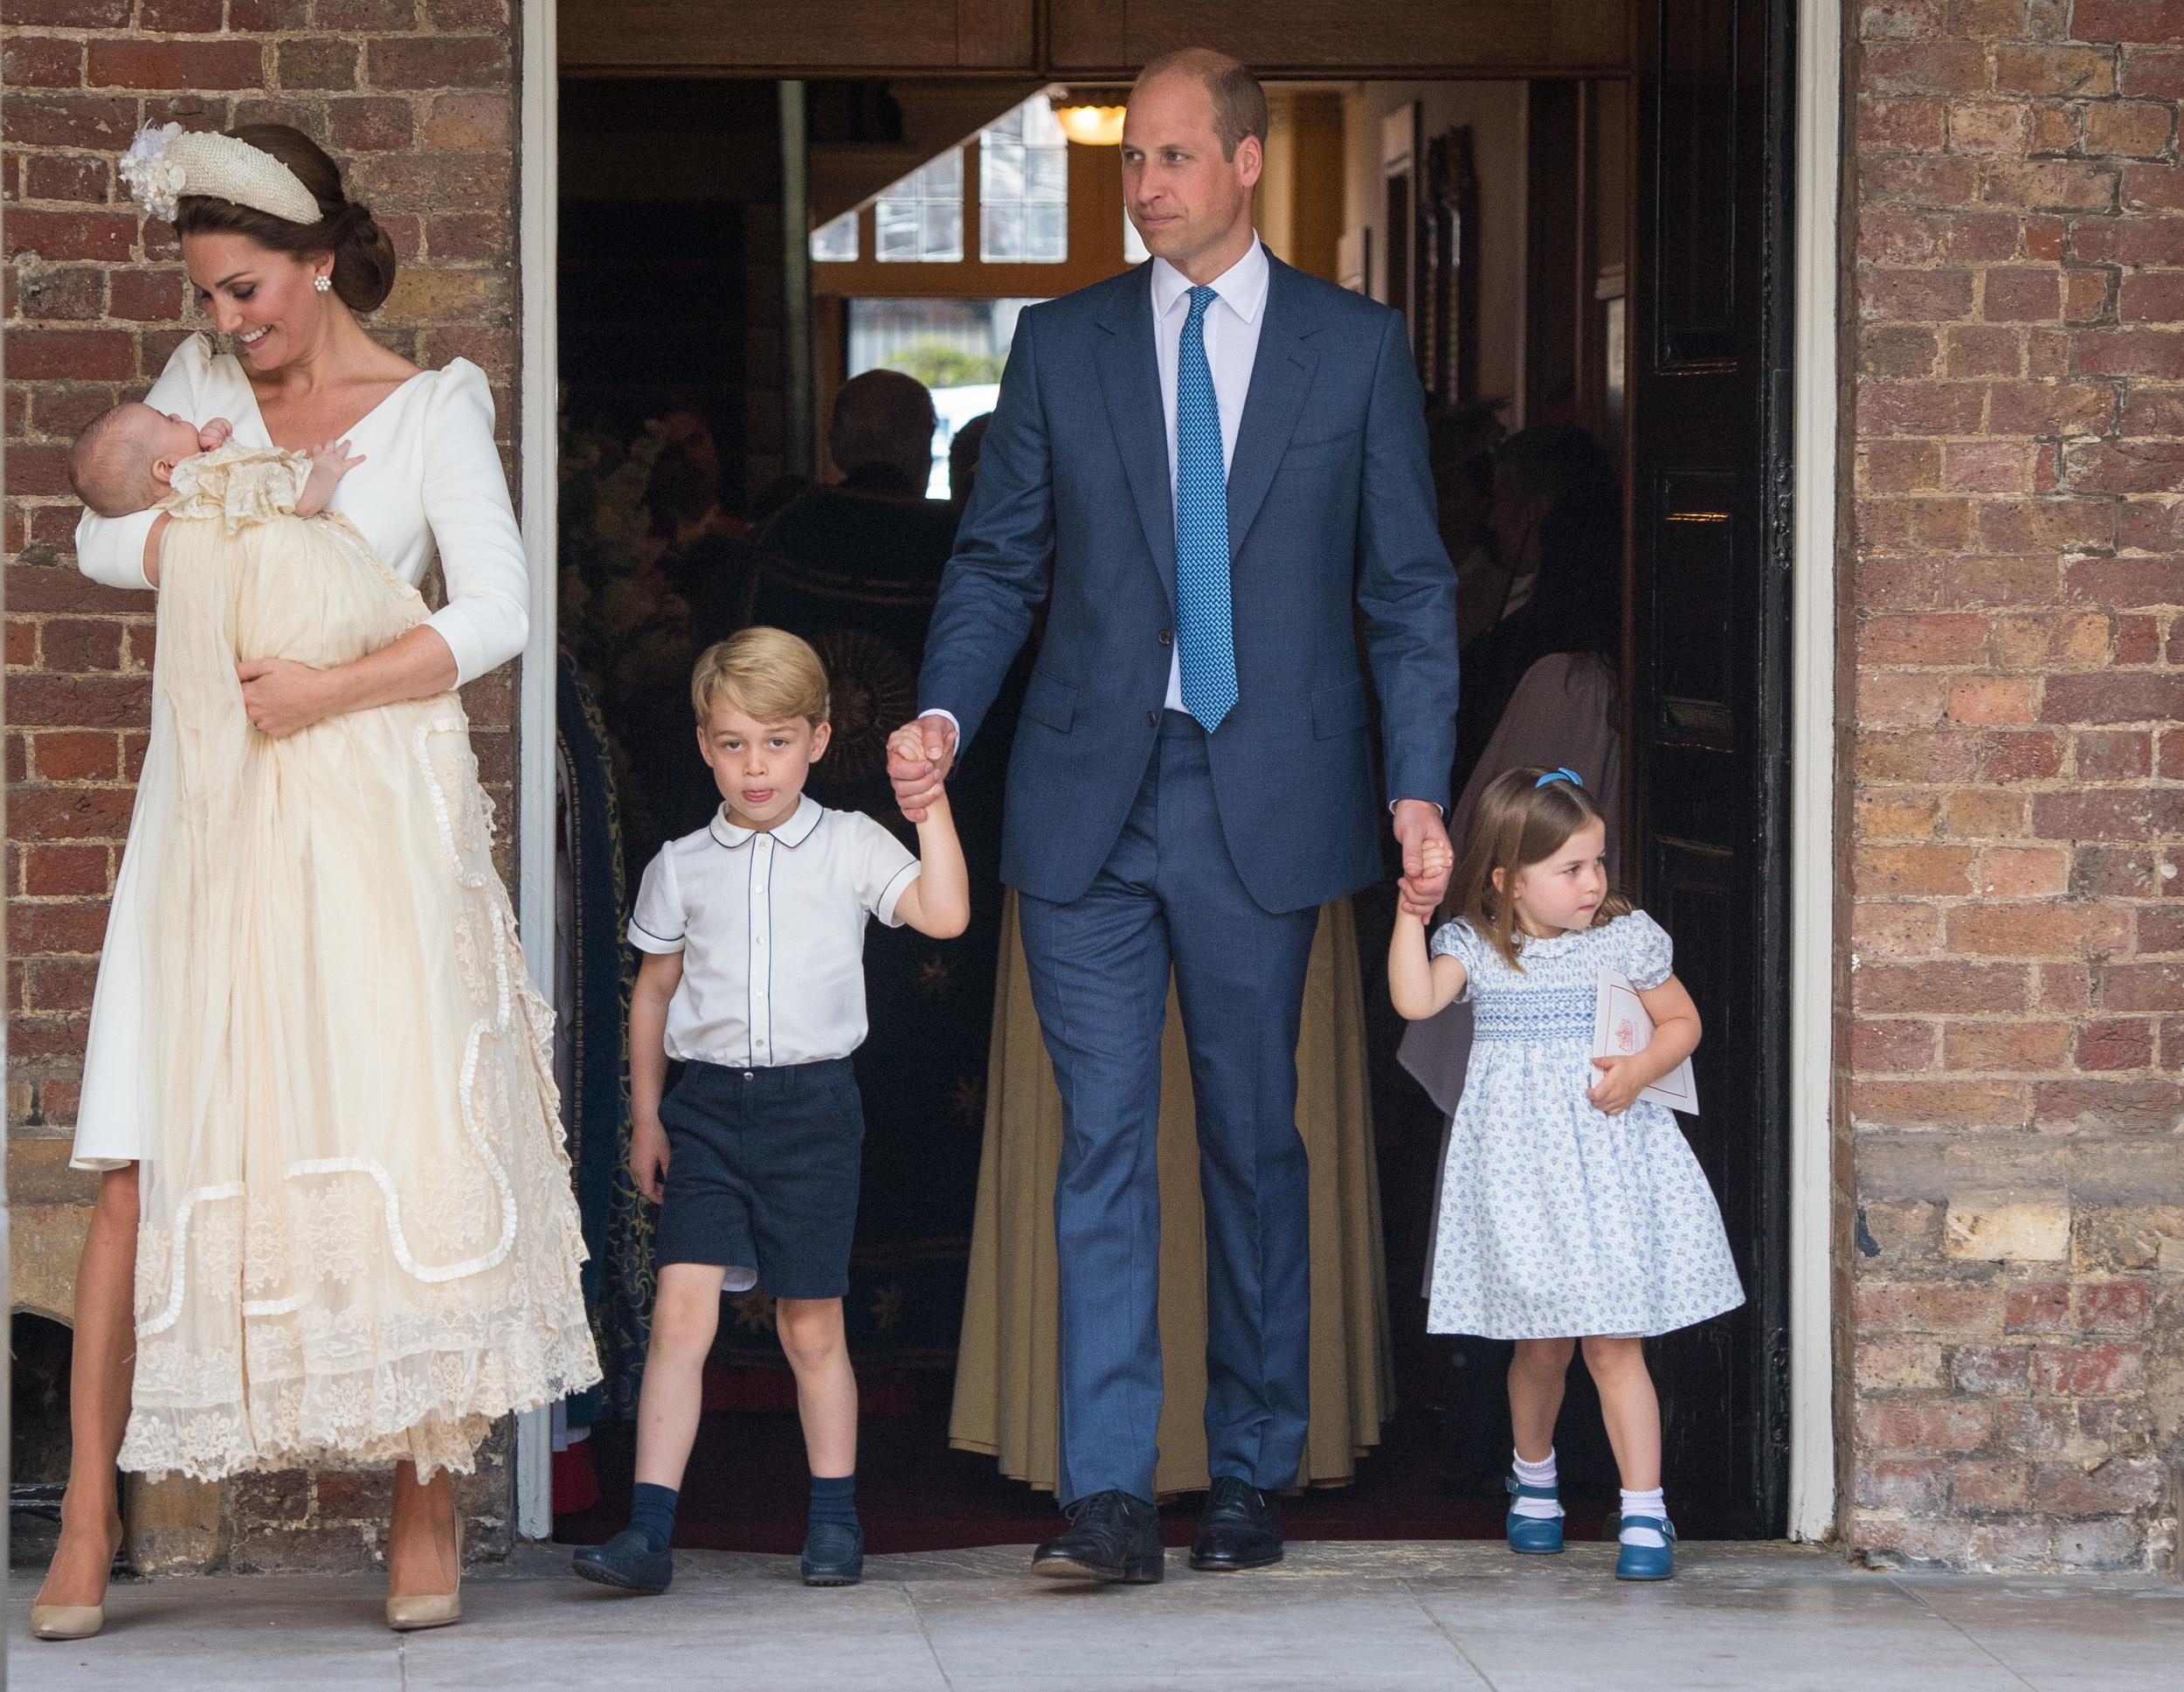 File photo dated 09/07/18 of the Duke and Duchess of Cambridge with their children Prince George, Princess Charlotte and Prince Louis. The Duchess has spoken of the joy of being a mother to her three children.